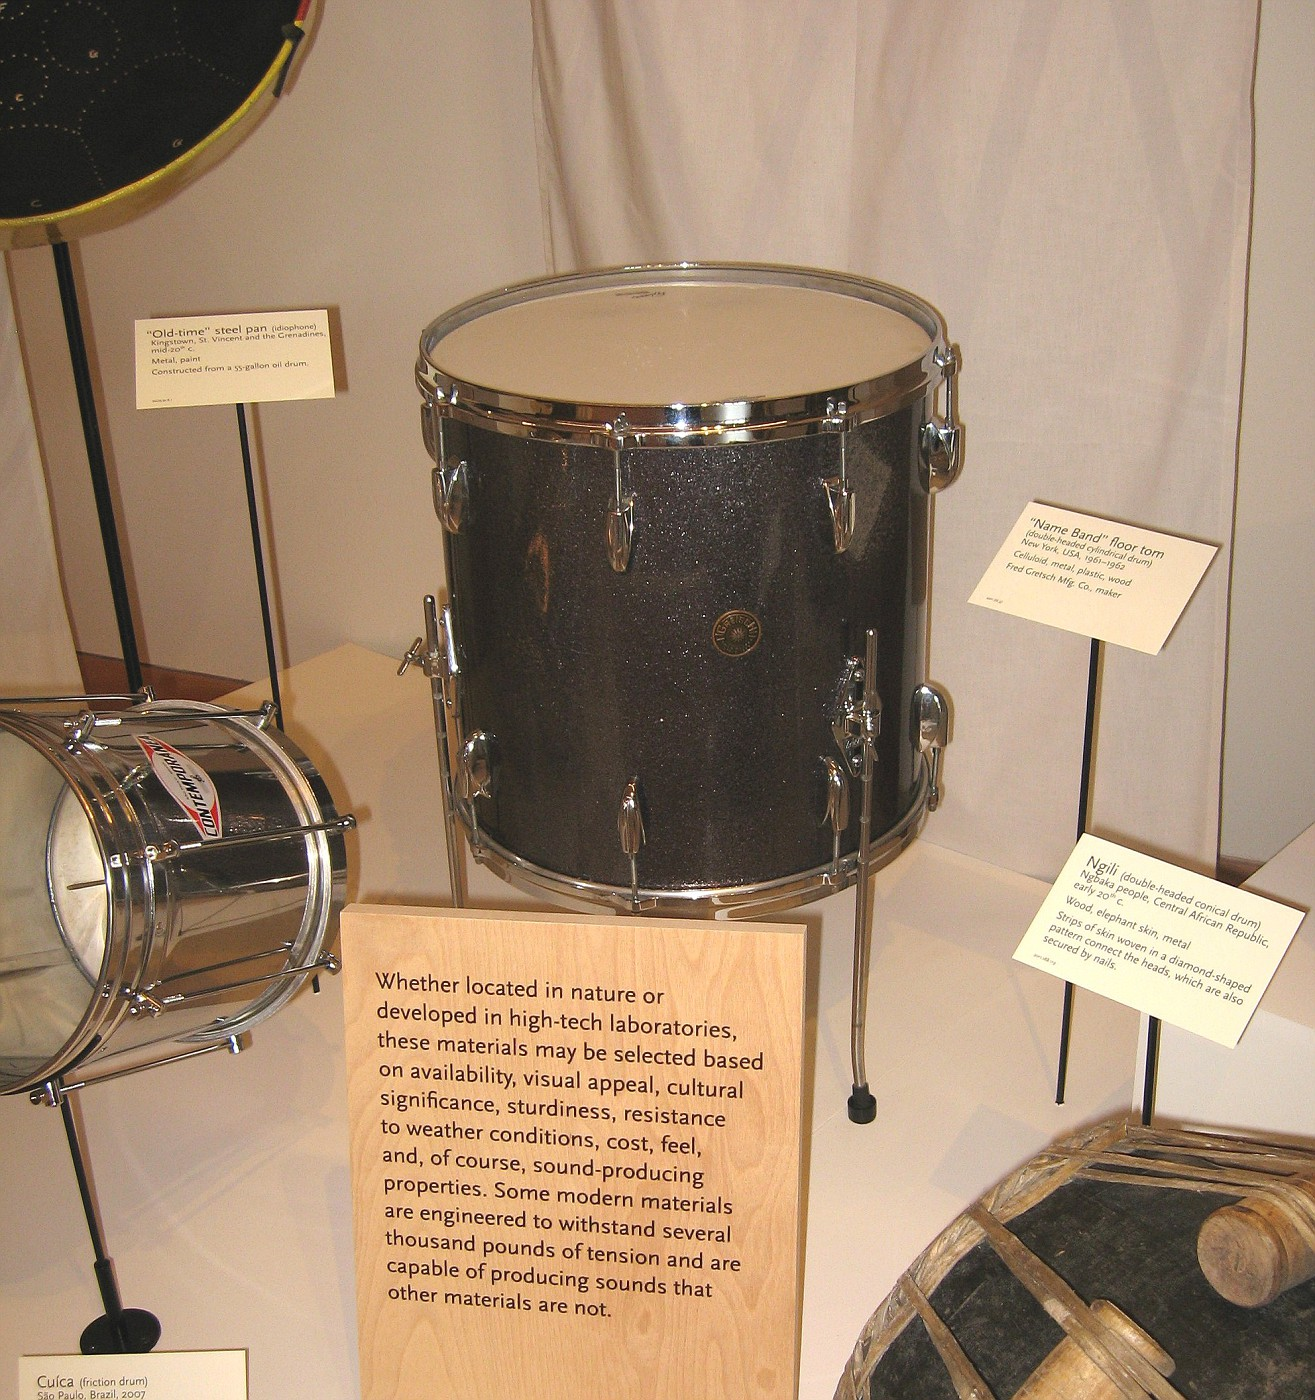 Musical Instrument Museum Drums Of The World Drummerworld Rope Tension Parts Diagram Cooperman Fife And Then I Will Move Through Rest Show You Other Drum Related Items Took Pictures Maybe 1 What Is In This